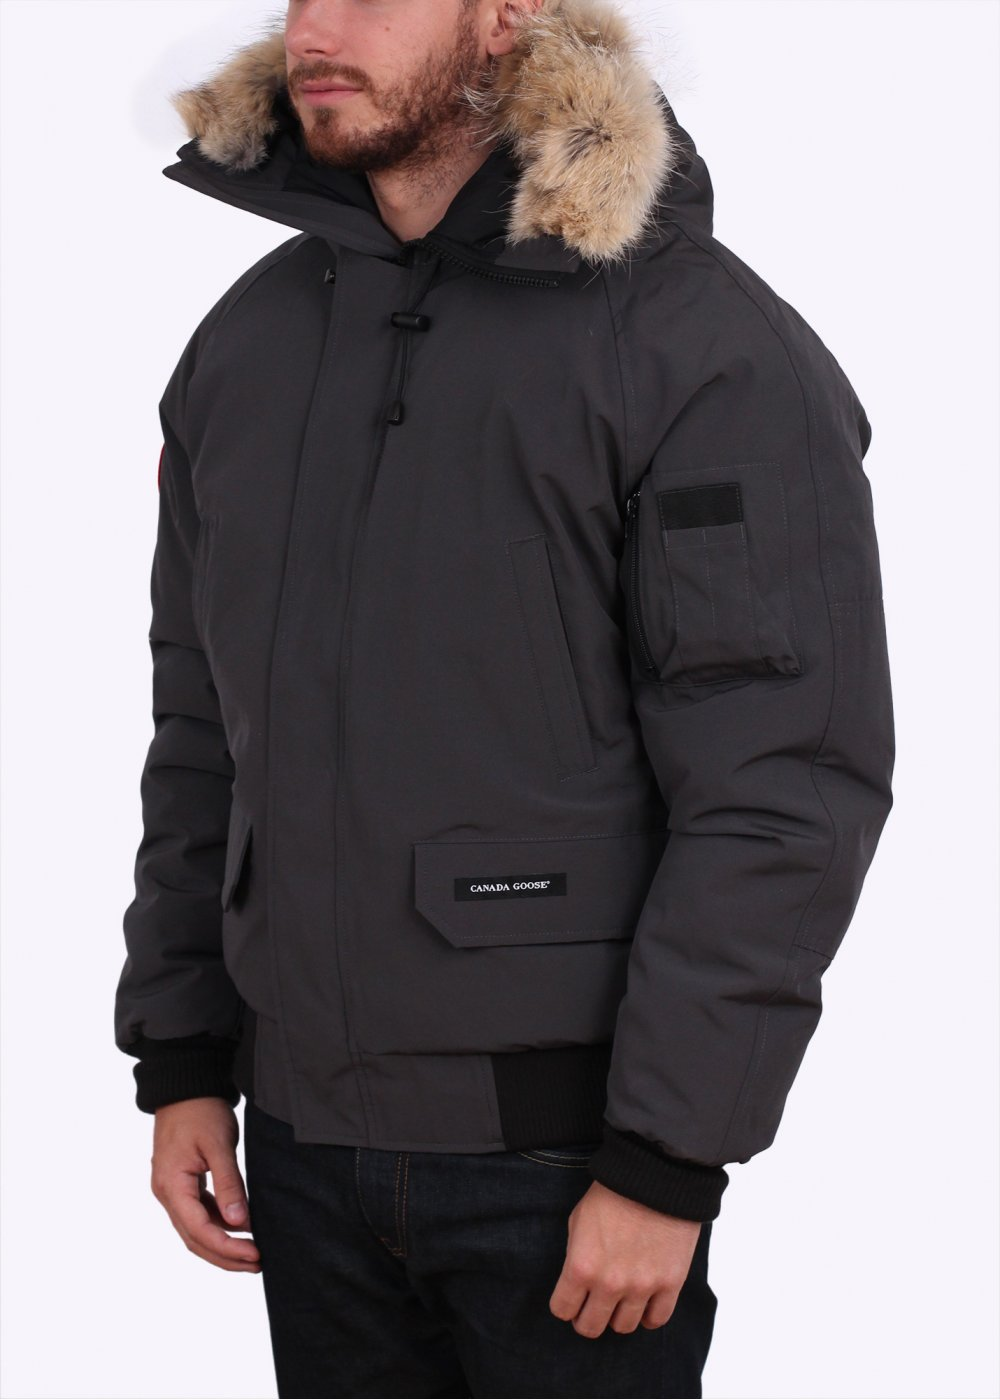 canada goose chilliwack bomber jacket graphite. Black Bedroom Furniture Sets. Home Design Ideas